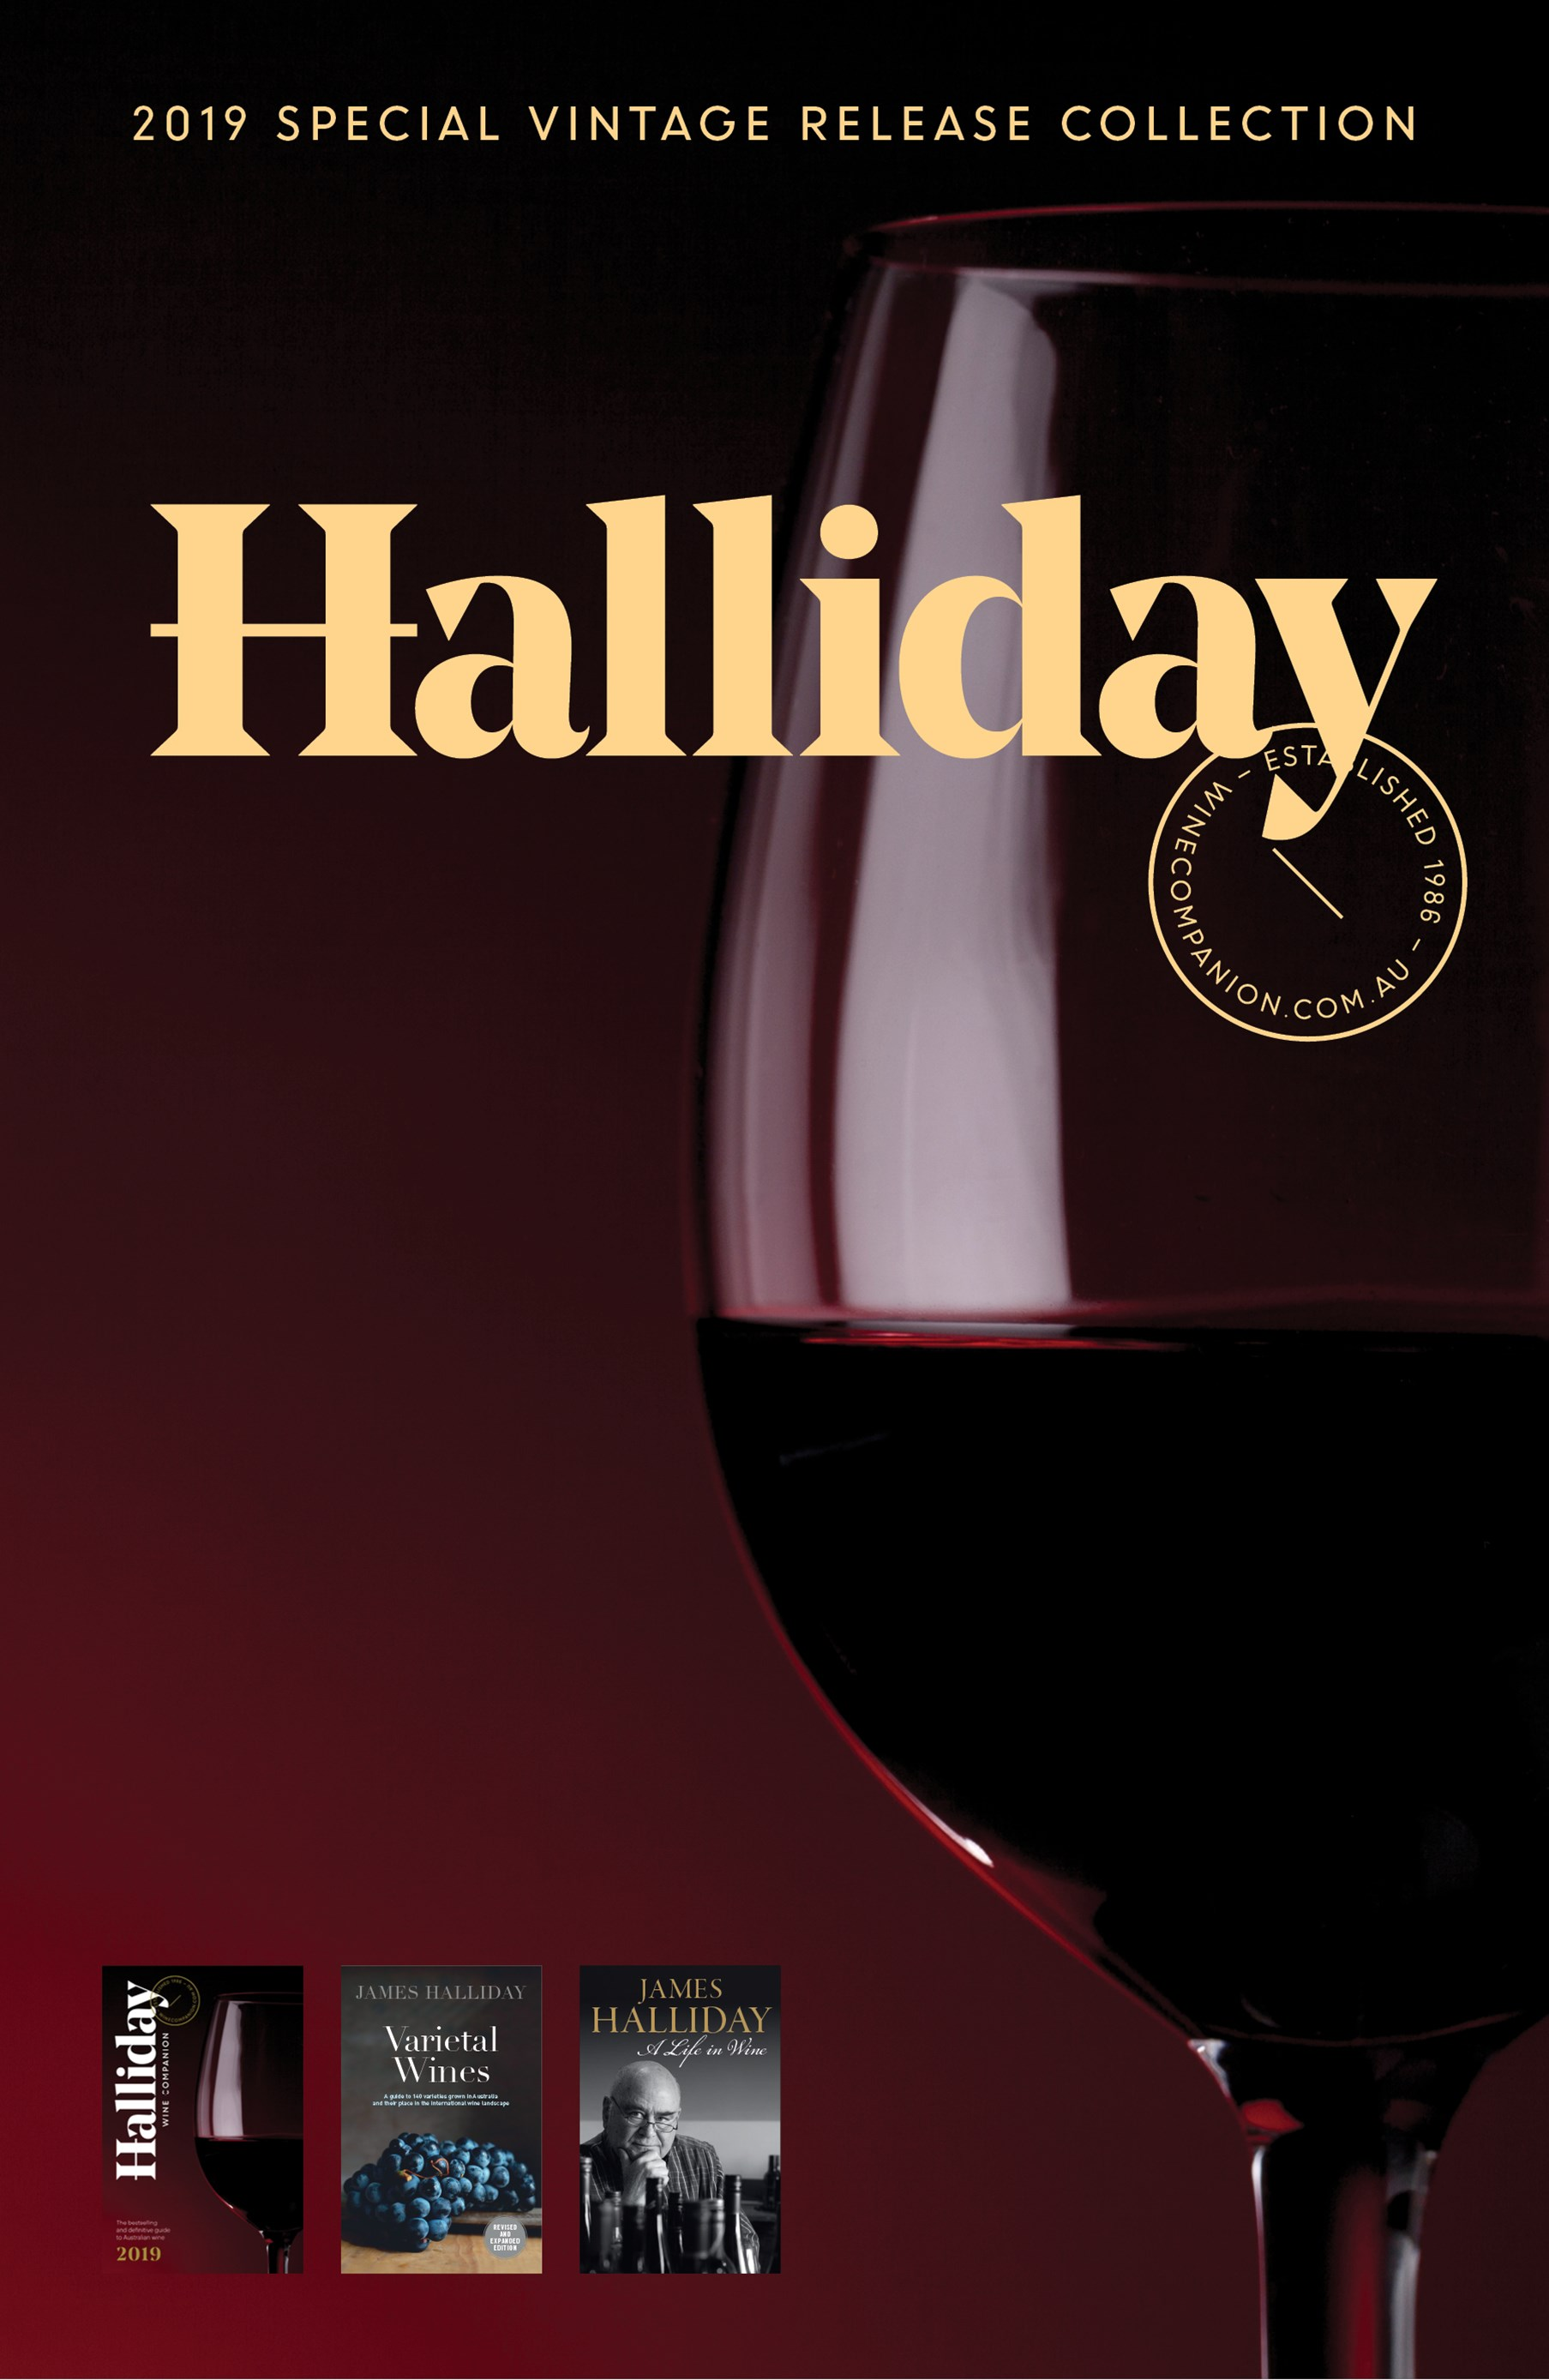 Halliday 2019 Special Vintage Release Collection.